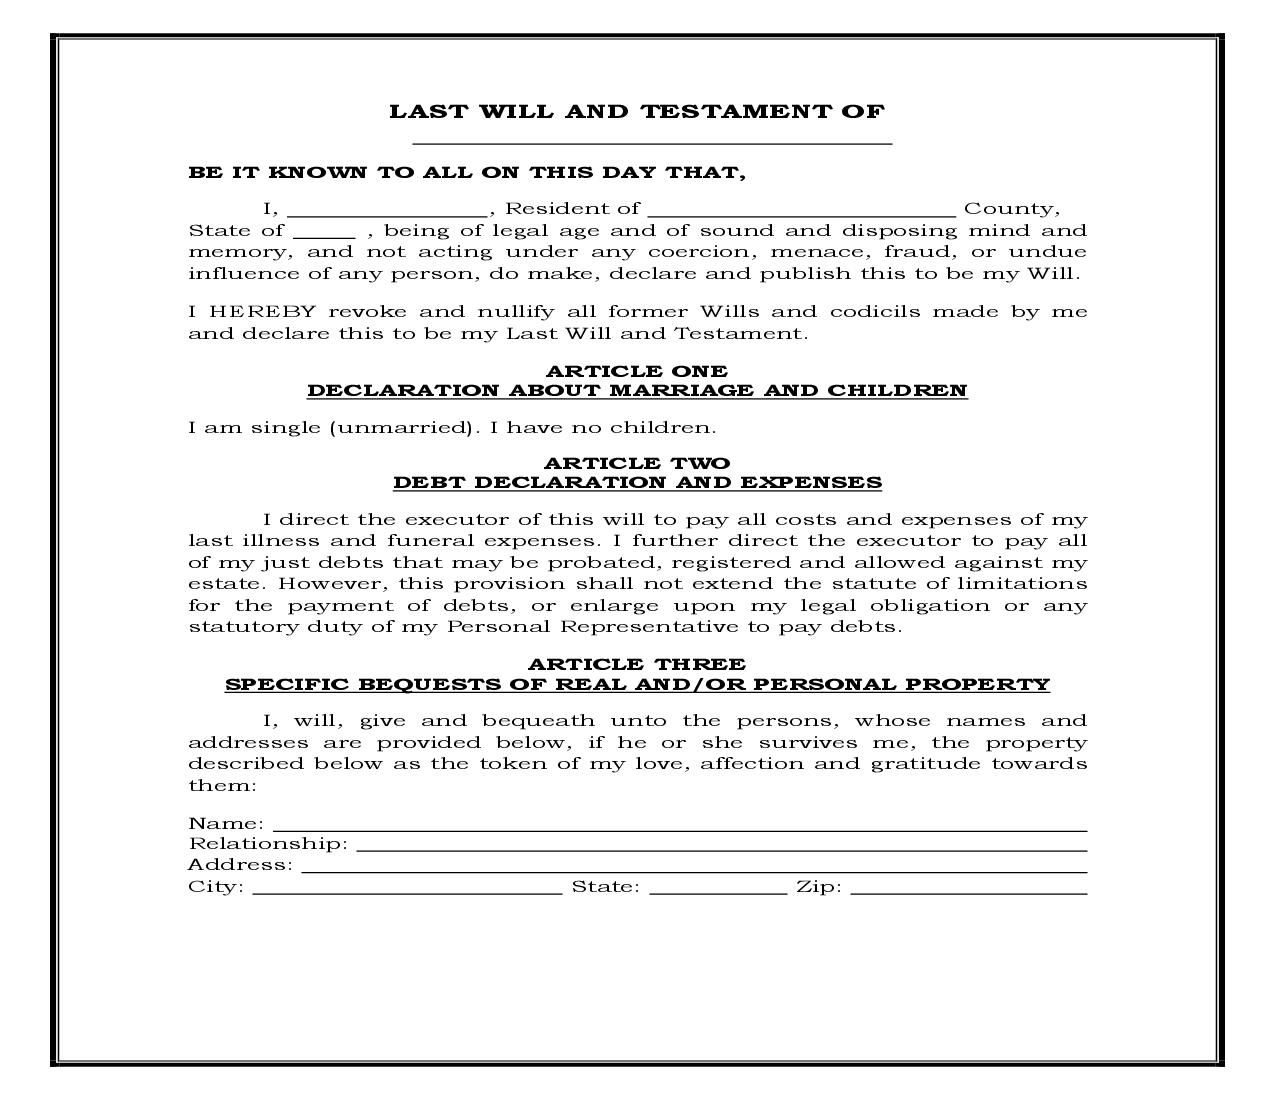 This Is A Legal Forms Form That Can Be Used For Wills For